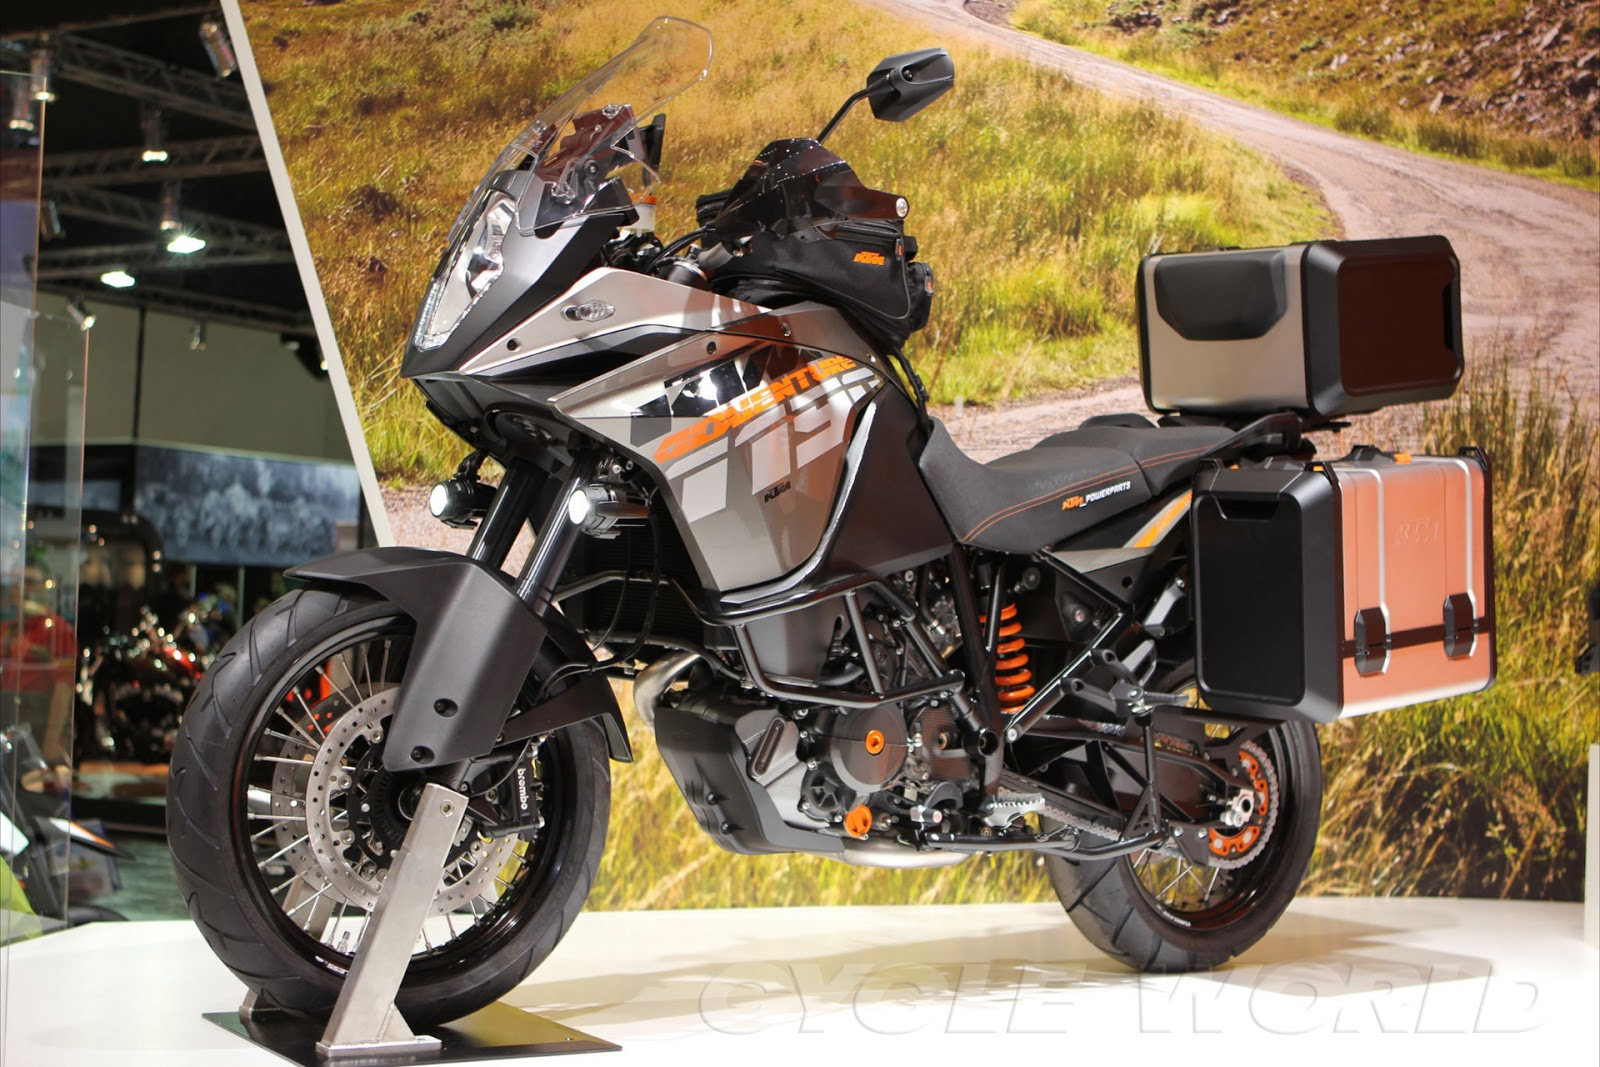 ktm 1190 adventure r 2013 picture of motor. Black Bedroom Furniture Sets. Home Design Ideas